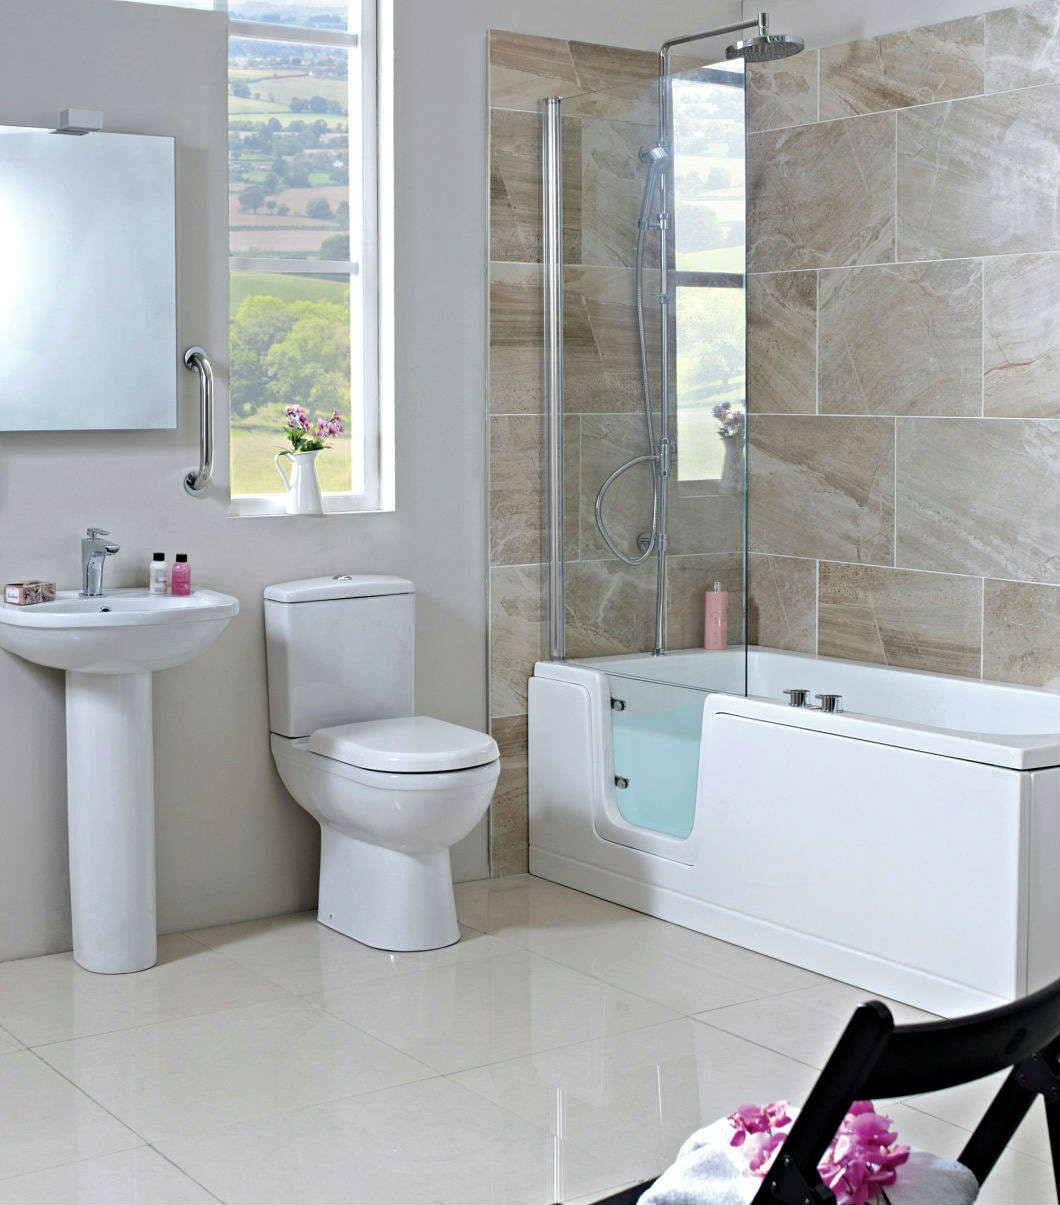 Easy Access Bathrooms - designed, supplied & installed